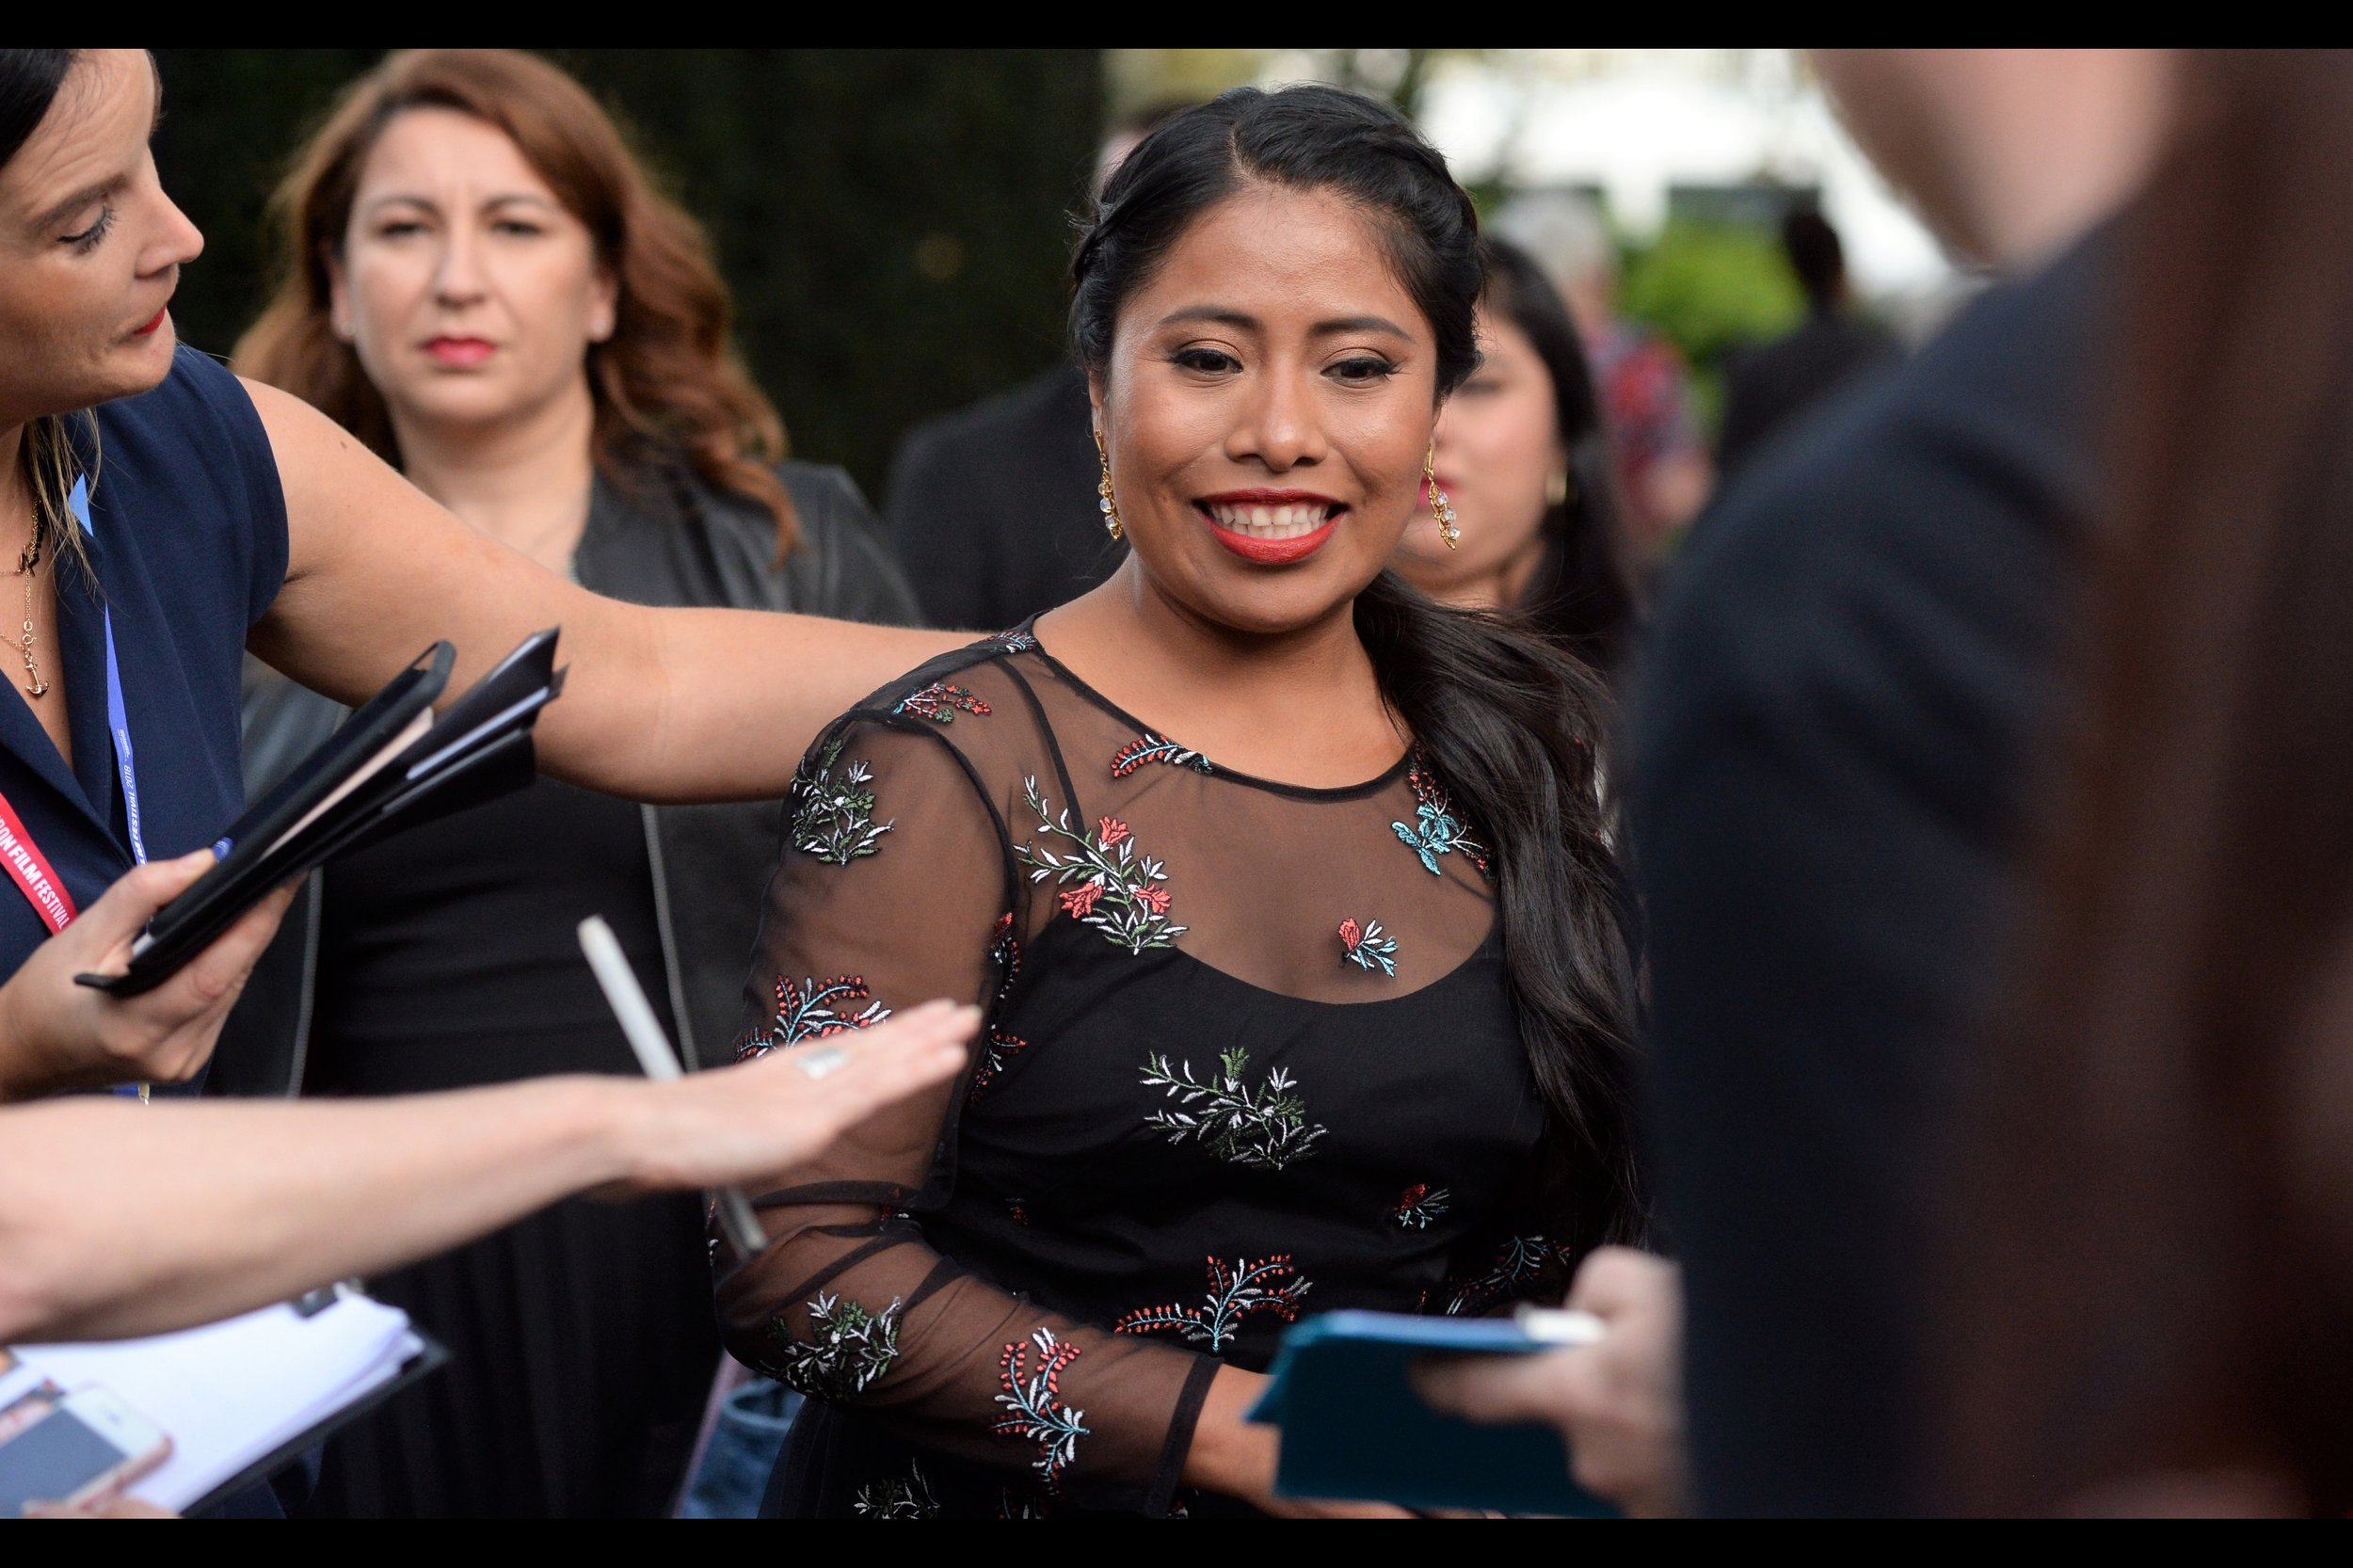 In contrast, Yalitza Aparicio is in this movie and this movie is her ONLY imdb.com credit, and she plays a character with only a one-world name. Now that's minimalism + cool!